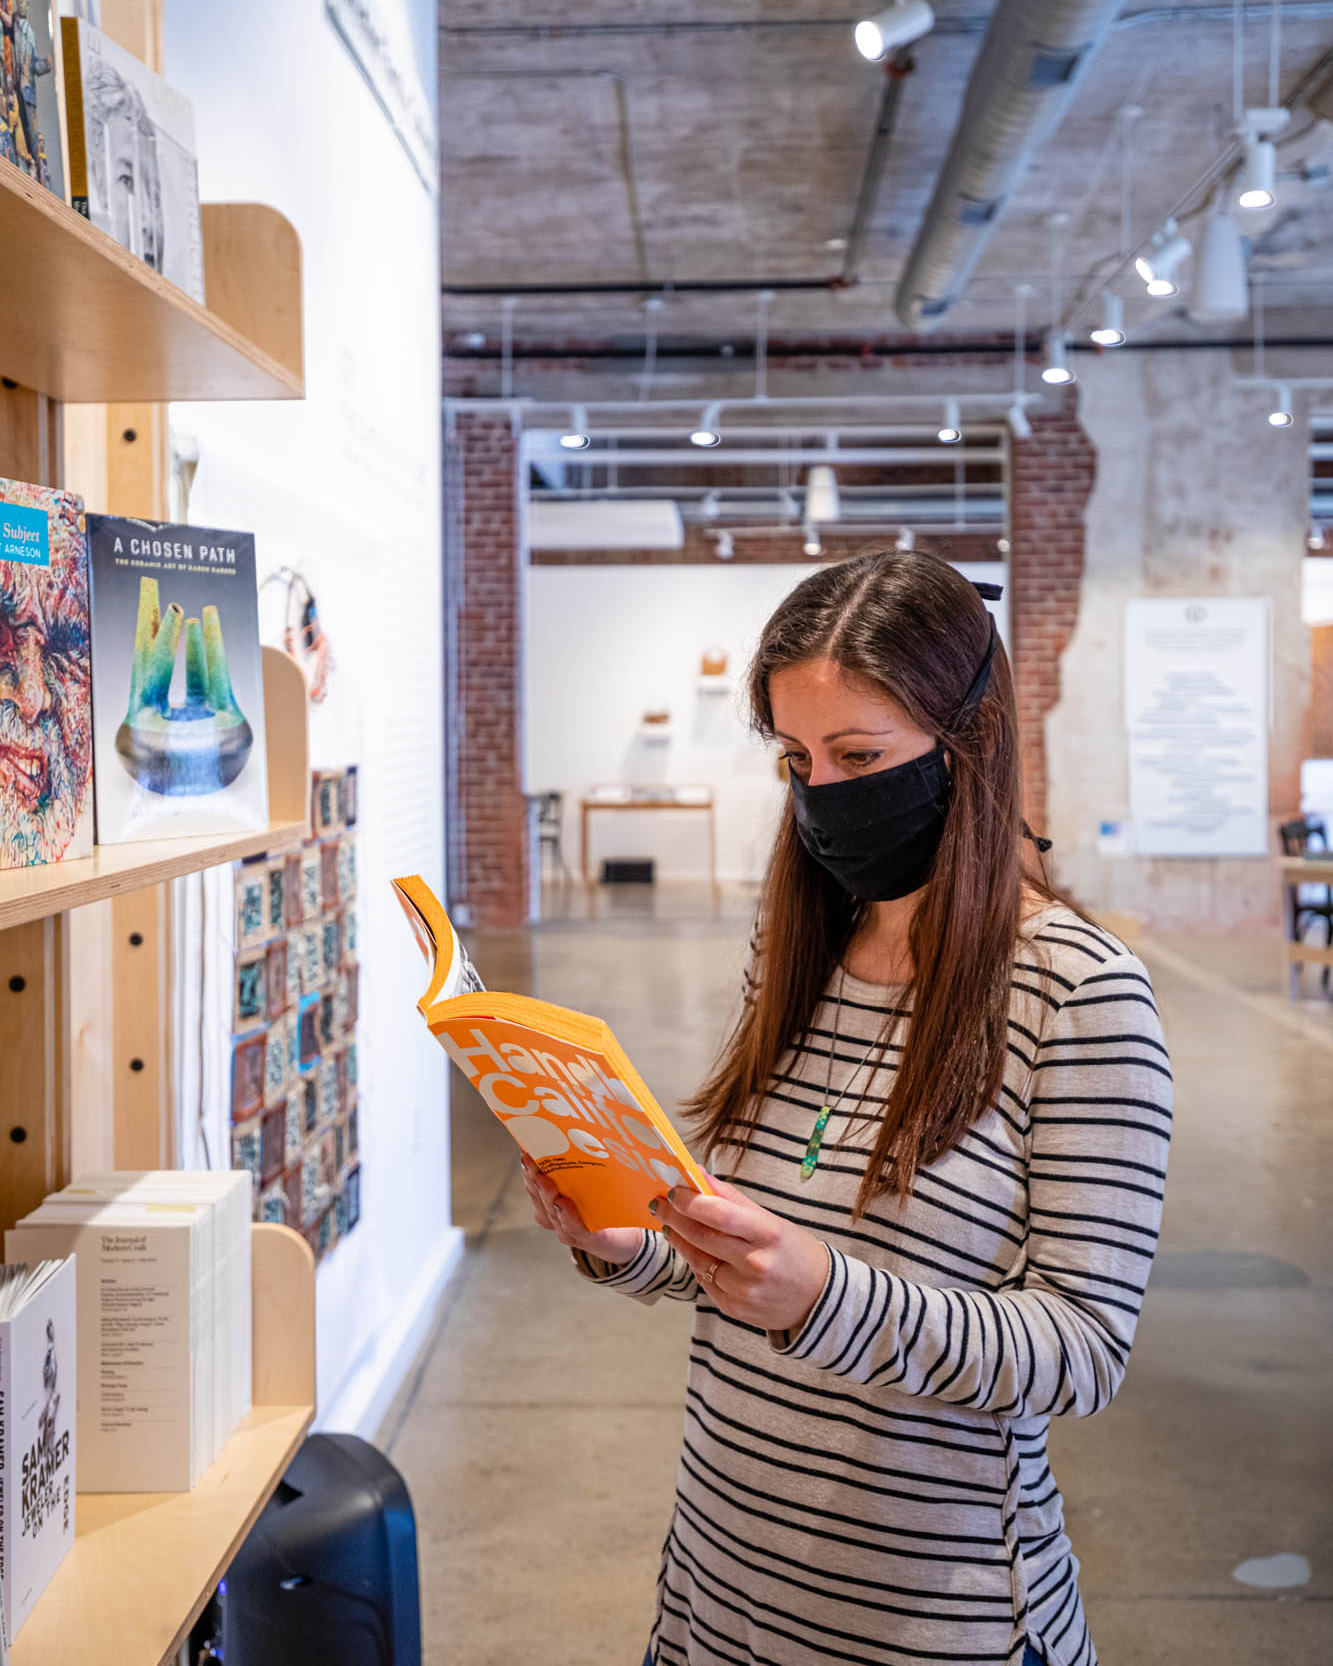 woman in striped shirt wearing a mask and reading exhibition information in gallery space at Center for Craft